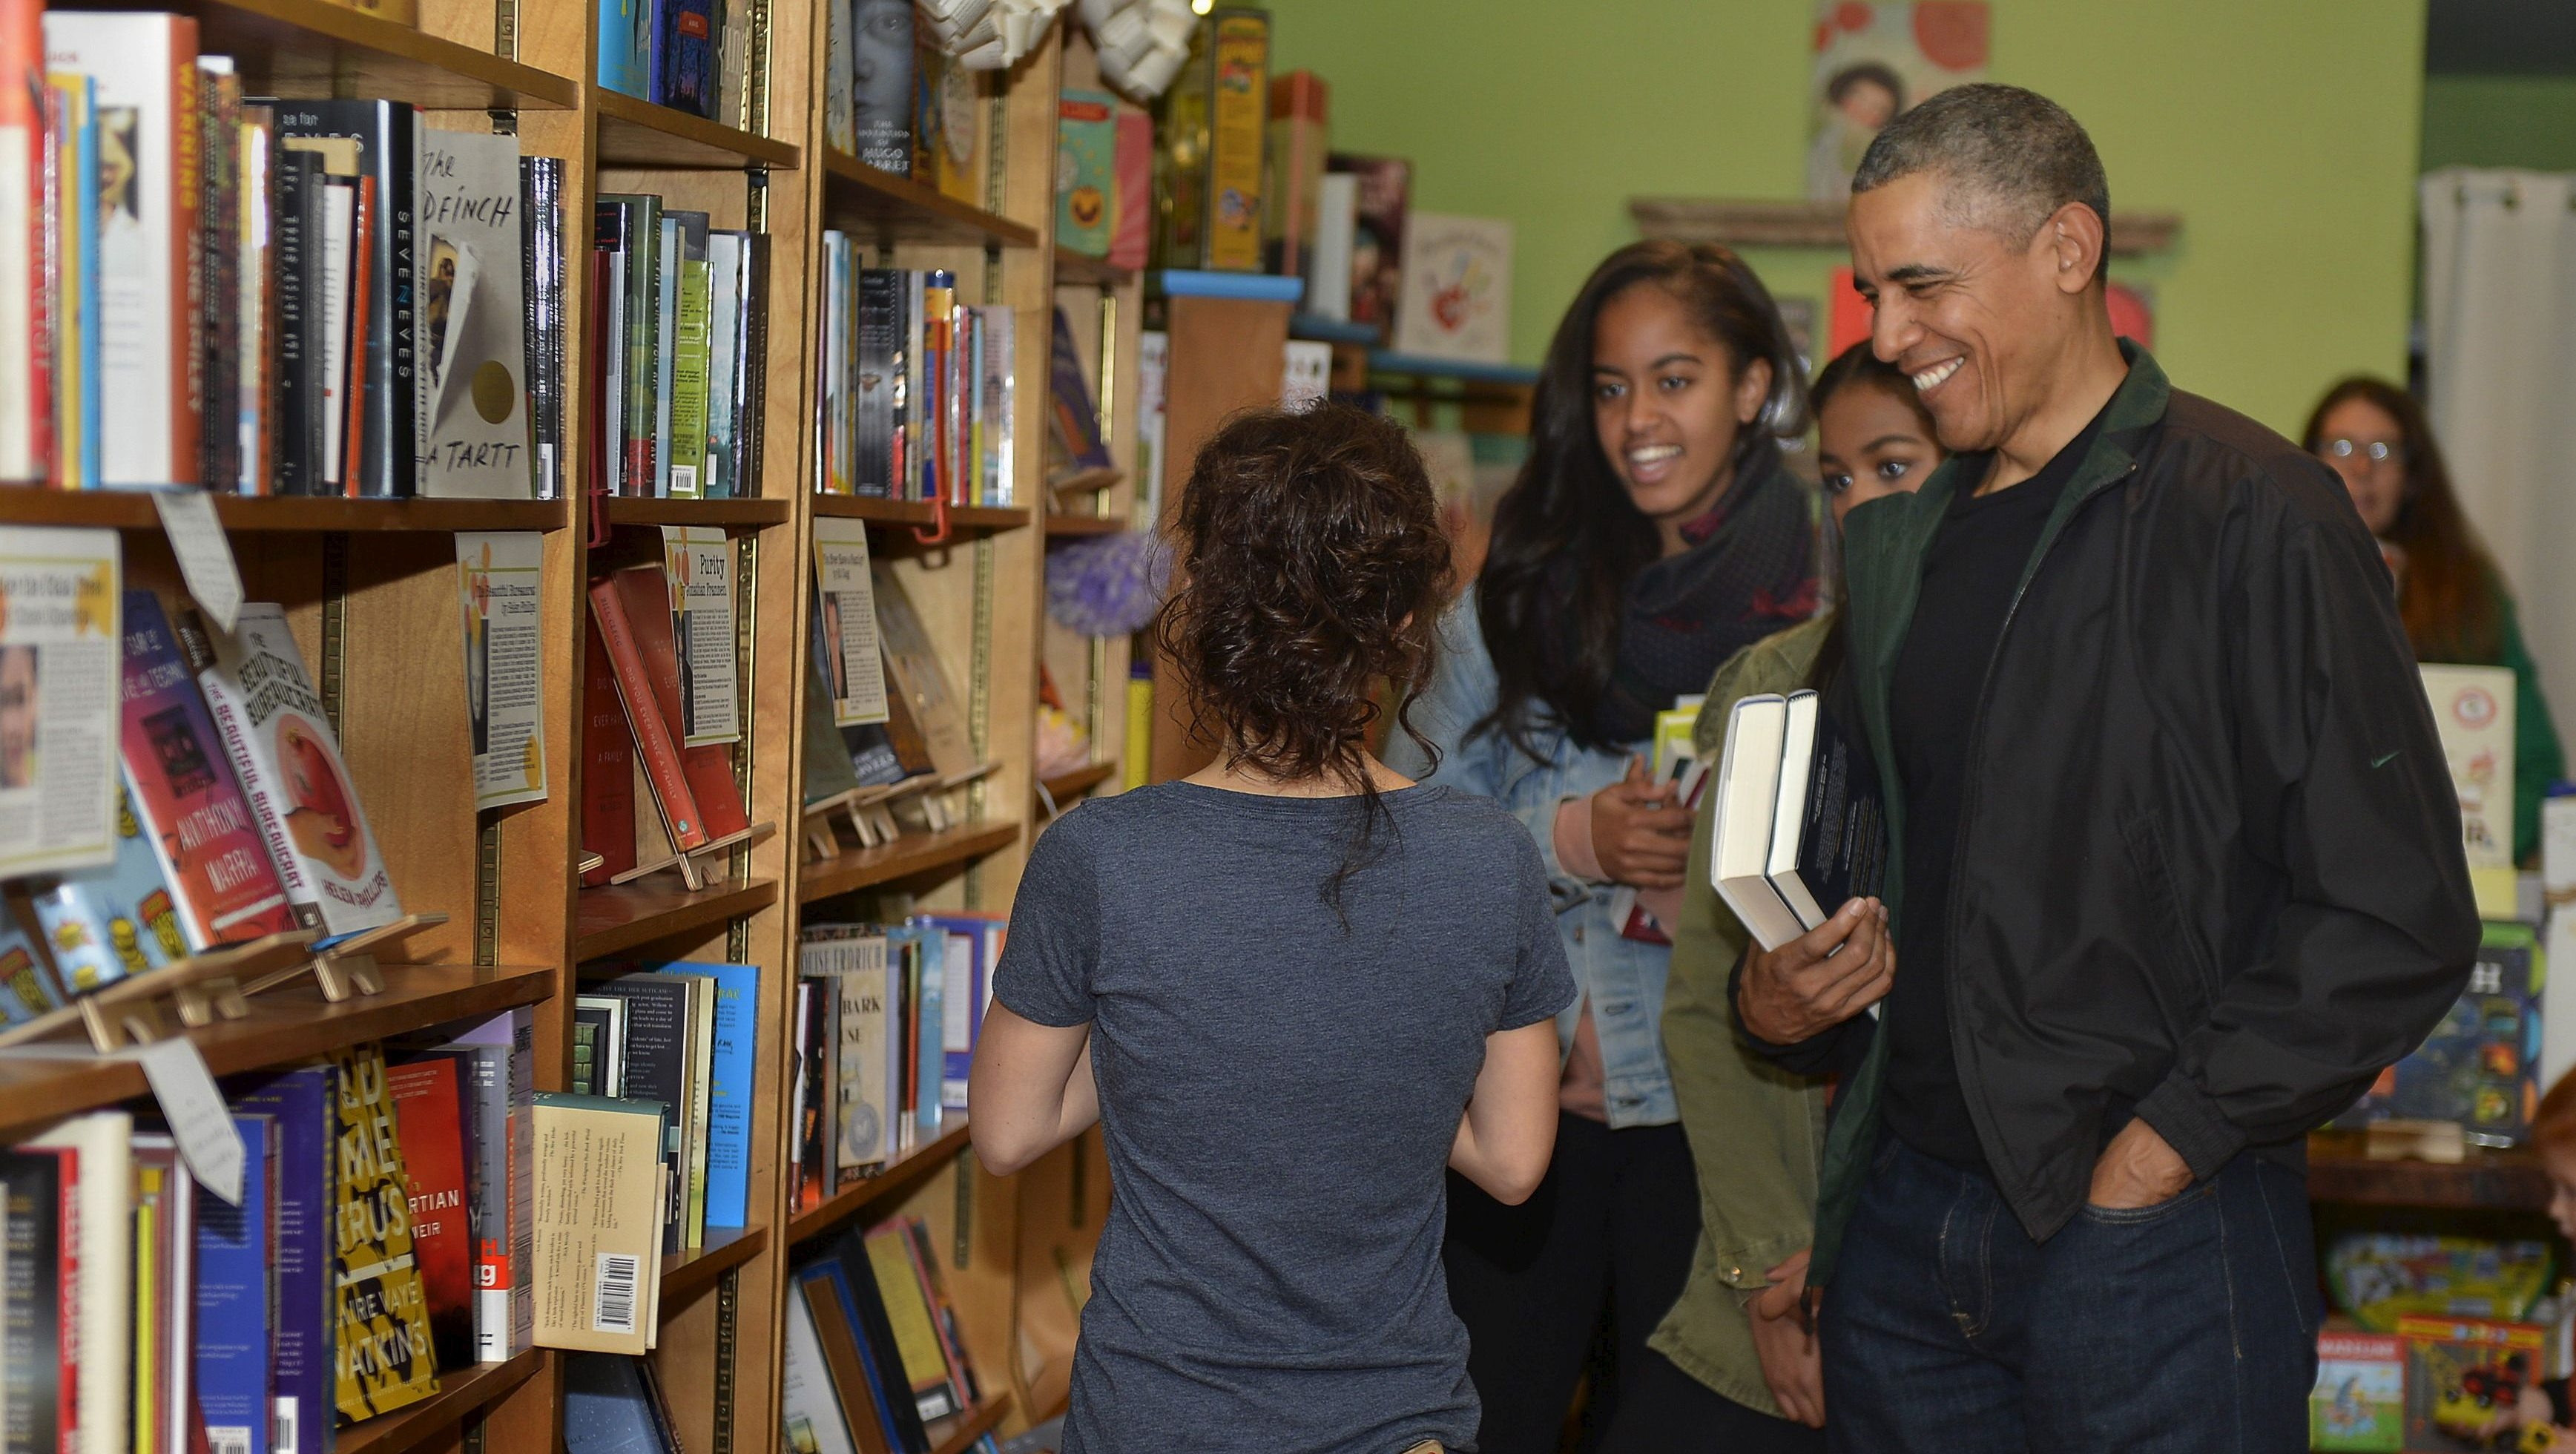 U.S. President Barack Obama (R) and his daughters Malia (C) and Sasha (partly hidden) interact with Upshur Street Books manager Anna Thorn as they buy books from the store in Washington, November 28, 2015. Today is Small Business Saturday, which was started to encourage shoppers to buy locally and from brick-and-mortar stores, and serves as a counterpoint to the traditionally busy shopping days of Black Friday and Cyber Monday after the Thanksgiving holiday.        REUTERS/Mike Theiler  - GF20000077754